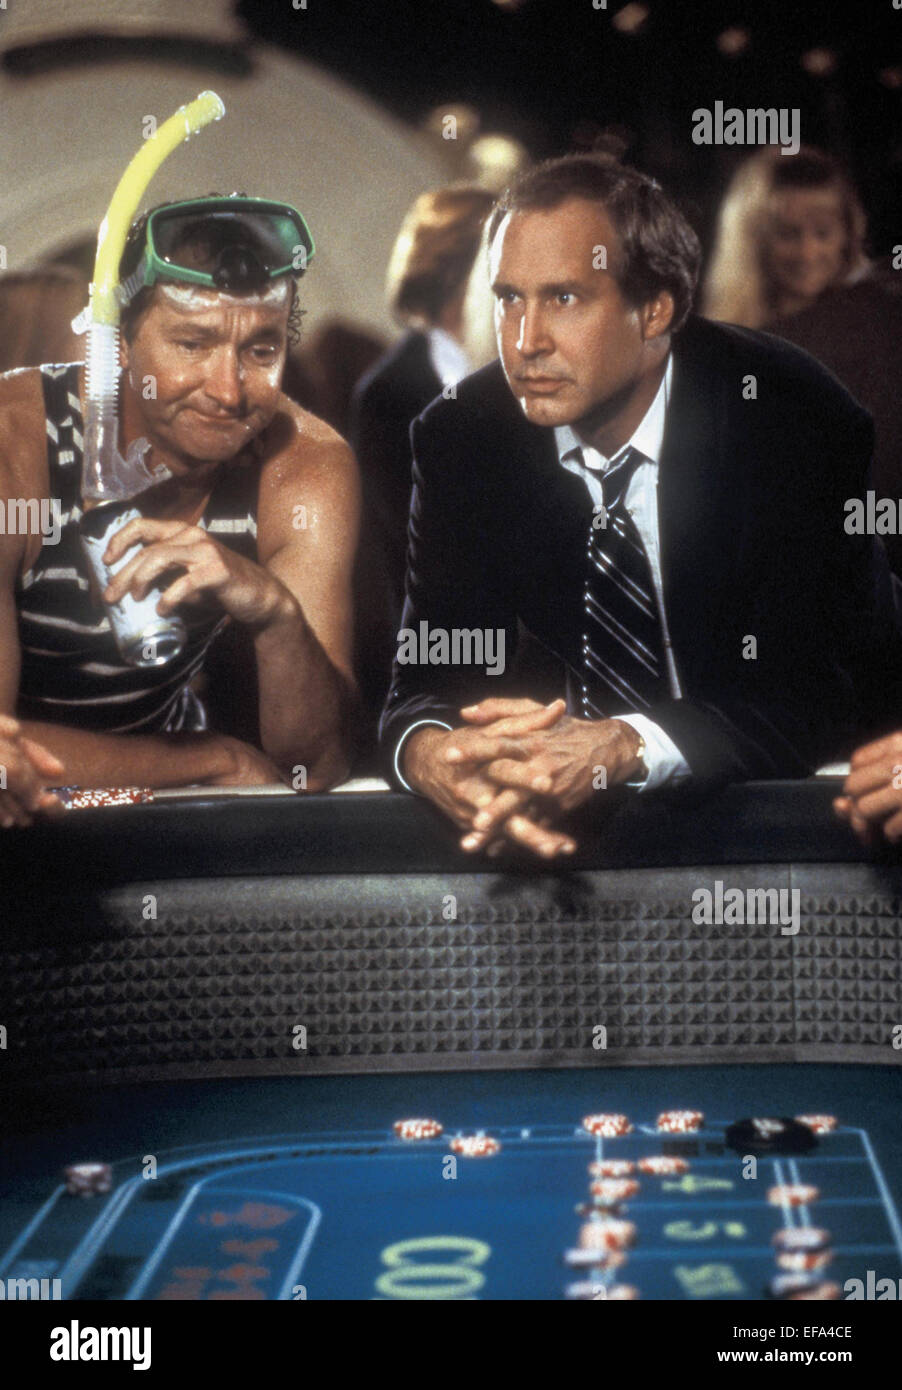 Chevy Chase Randy Quaid Signed Vegas: RANDY QUAID & CHEVY CHASE VEGAS VACATION (1997 Stock Photo